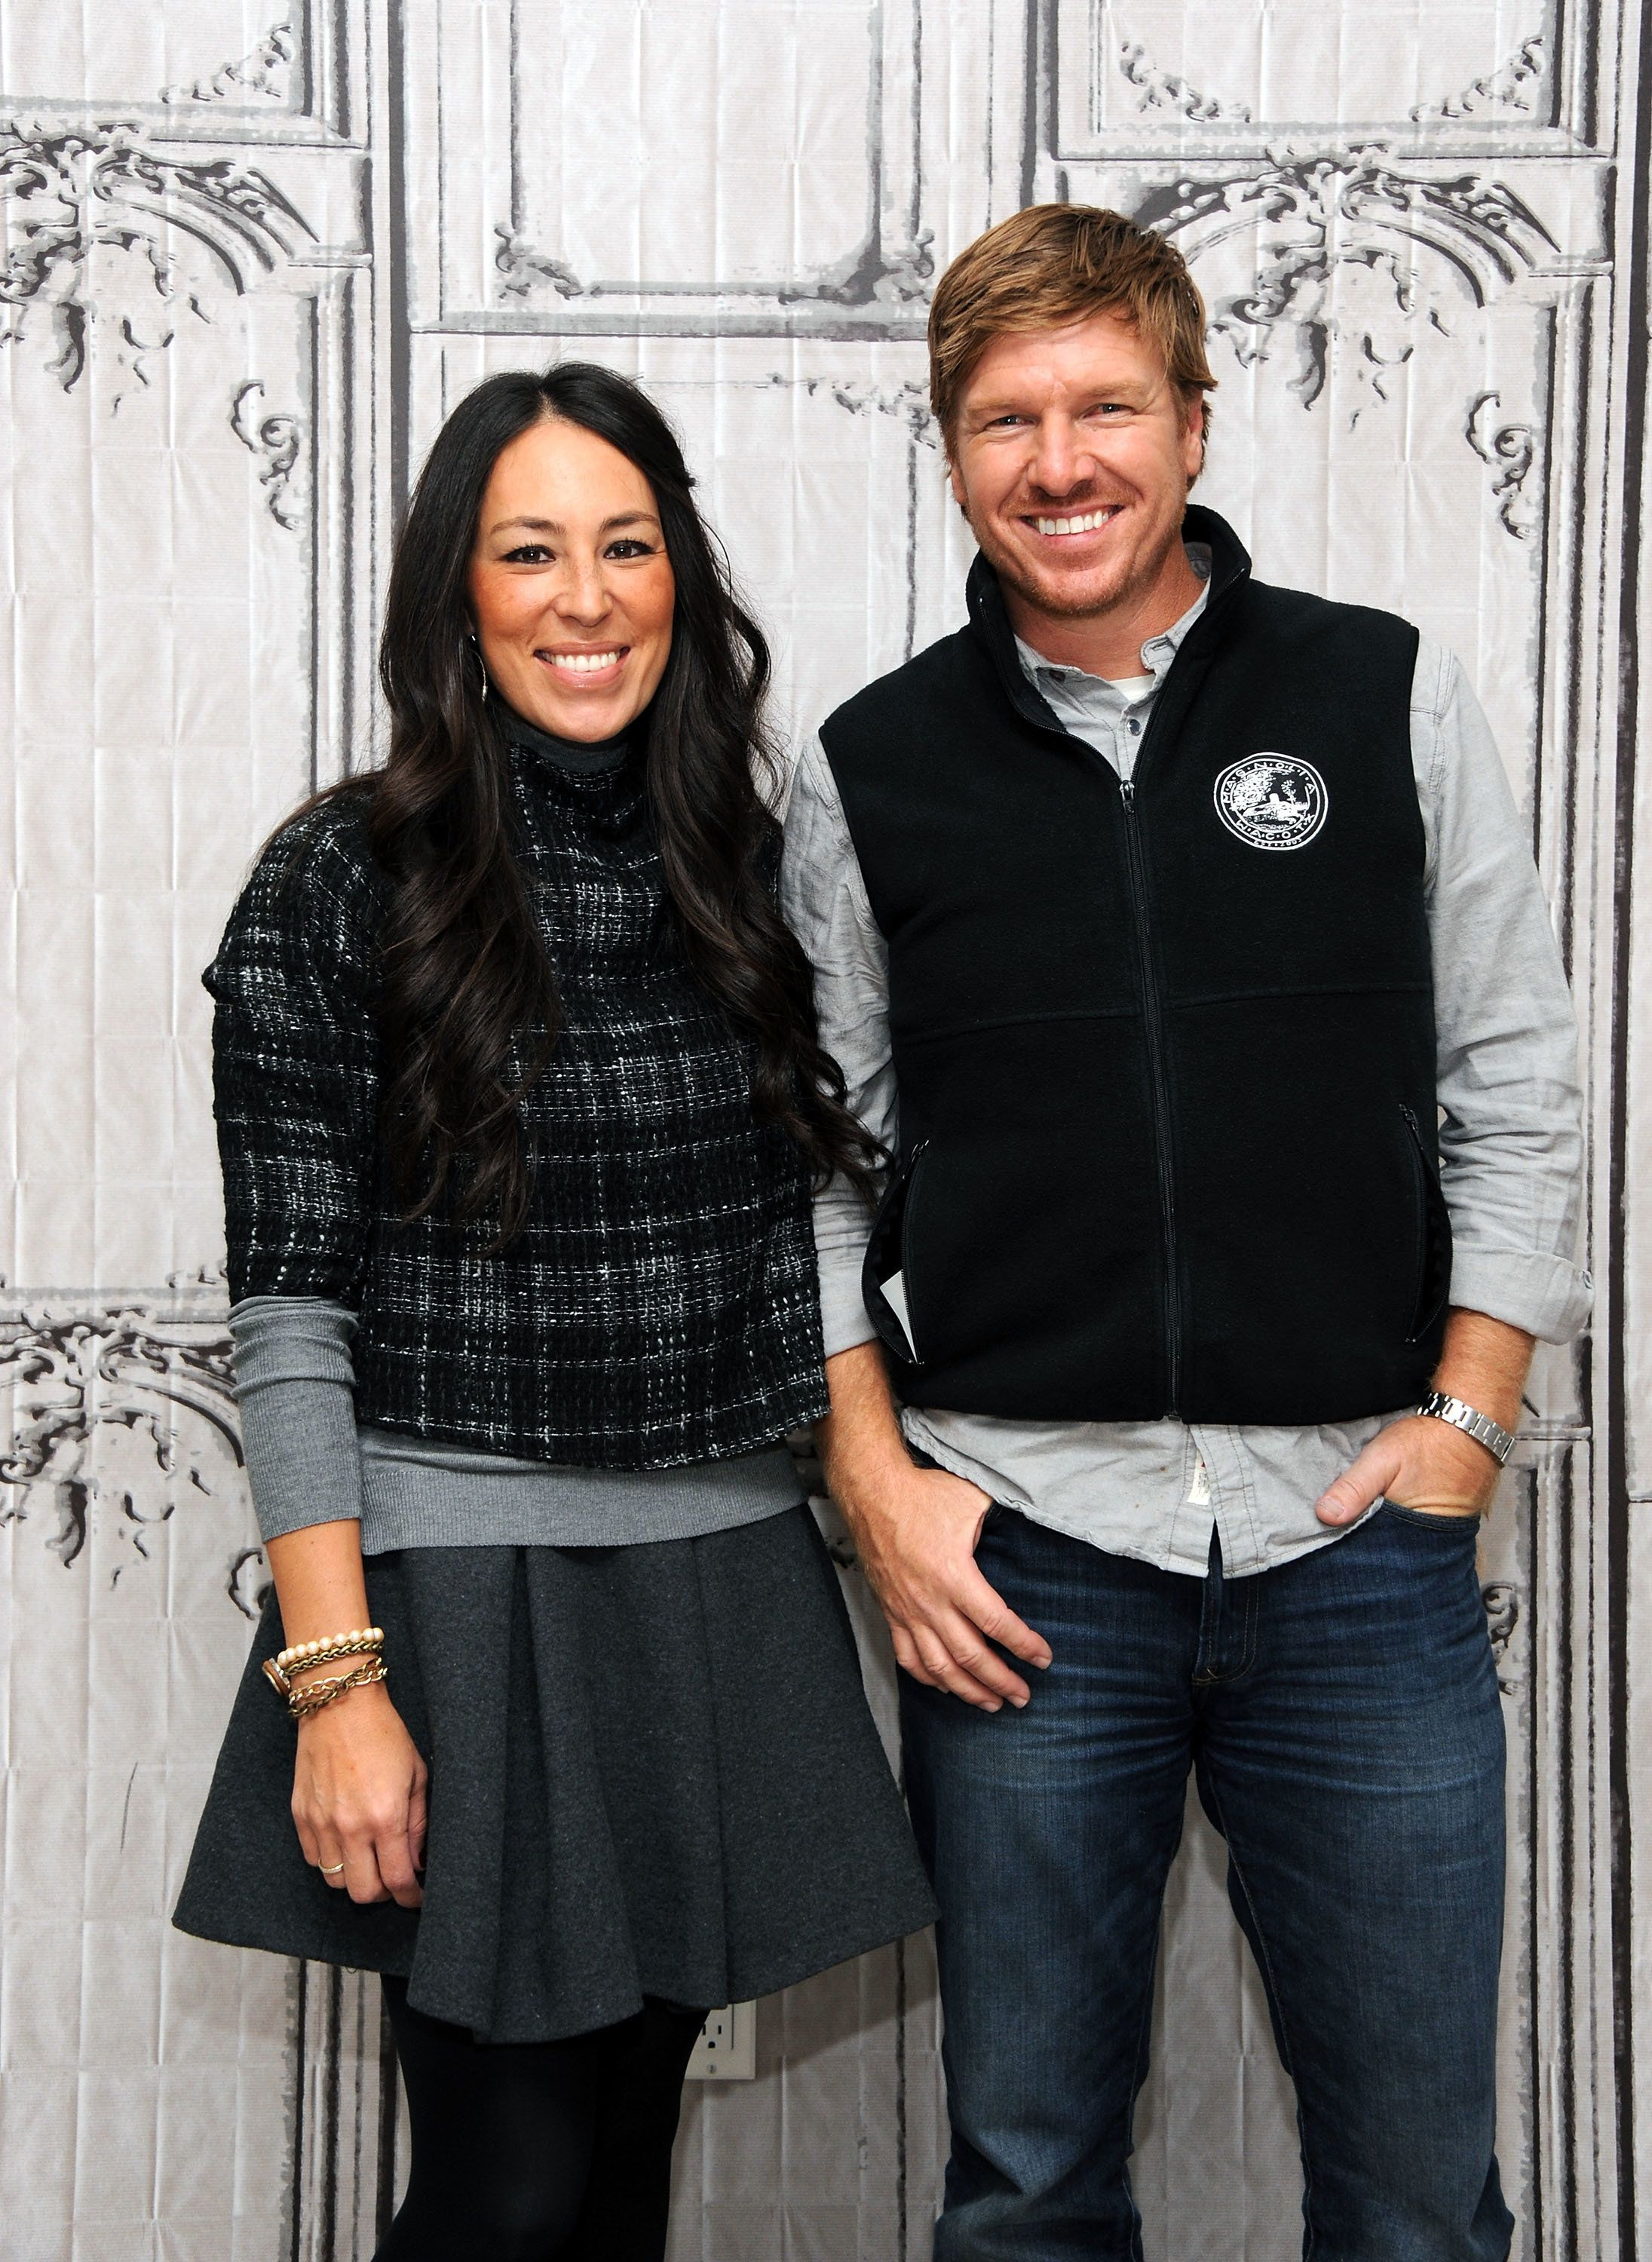 NEW YORK, NY - DECEMBER 08:  Designers Joanna Gaines and Chip Gaines attend AOL Build Presents: 'Fixer Upper' at AOL Studios In New York on December 8, 2015 in New York City.  (Photo by Desiree Navarro/WireImage)